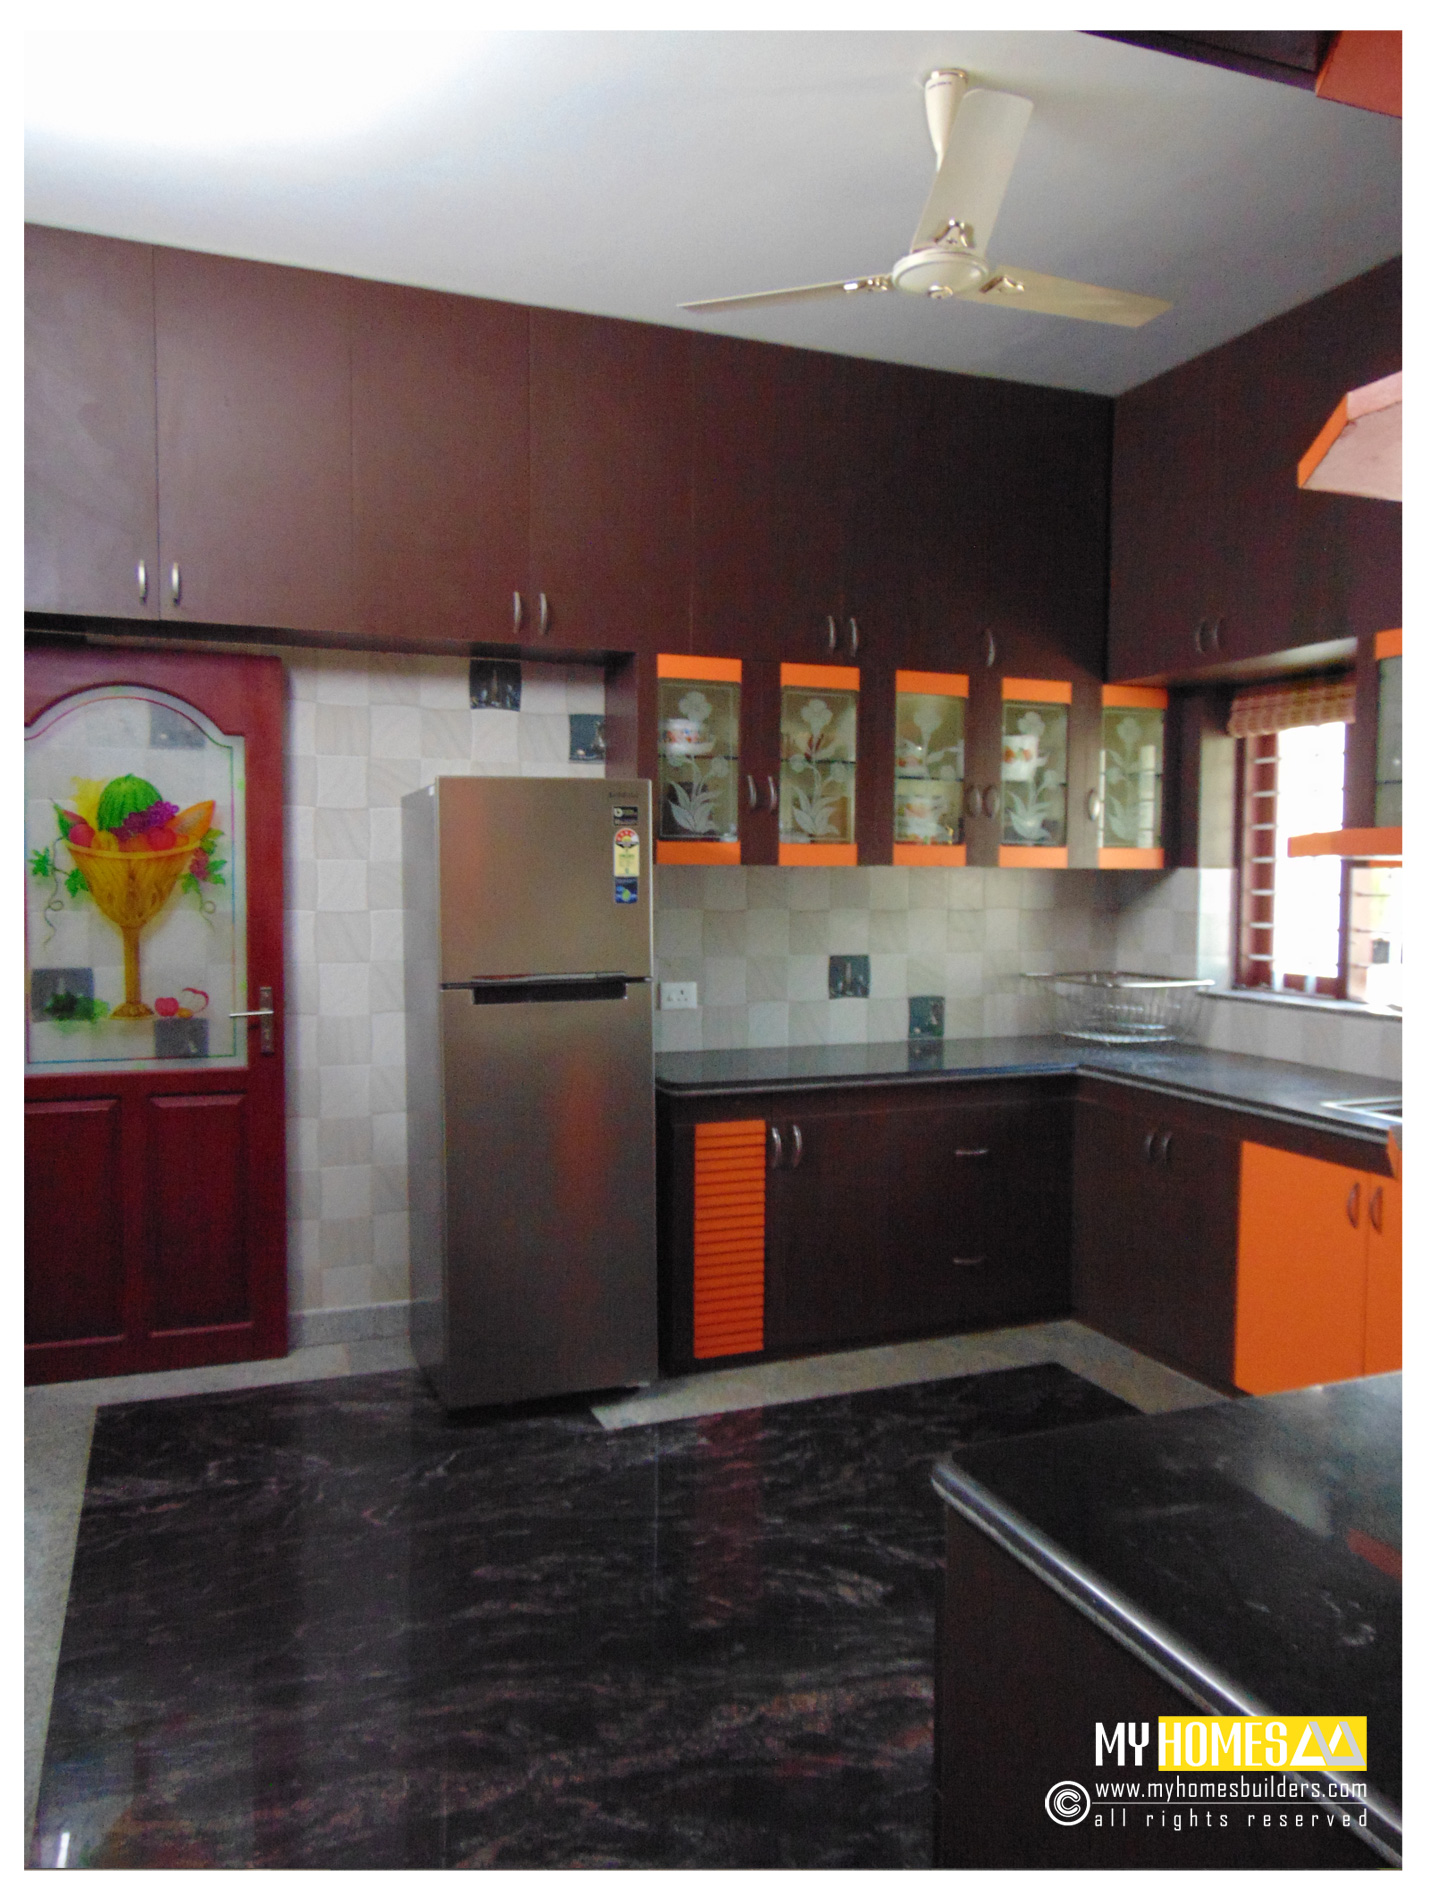 Kerala kitchen designs idea in modular style for house in for Indian house kitchen design